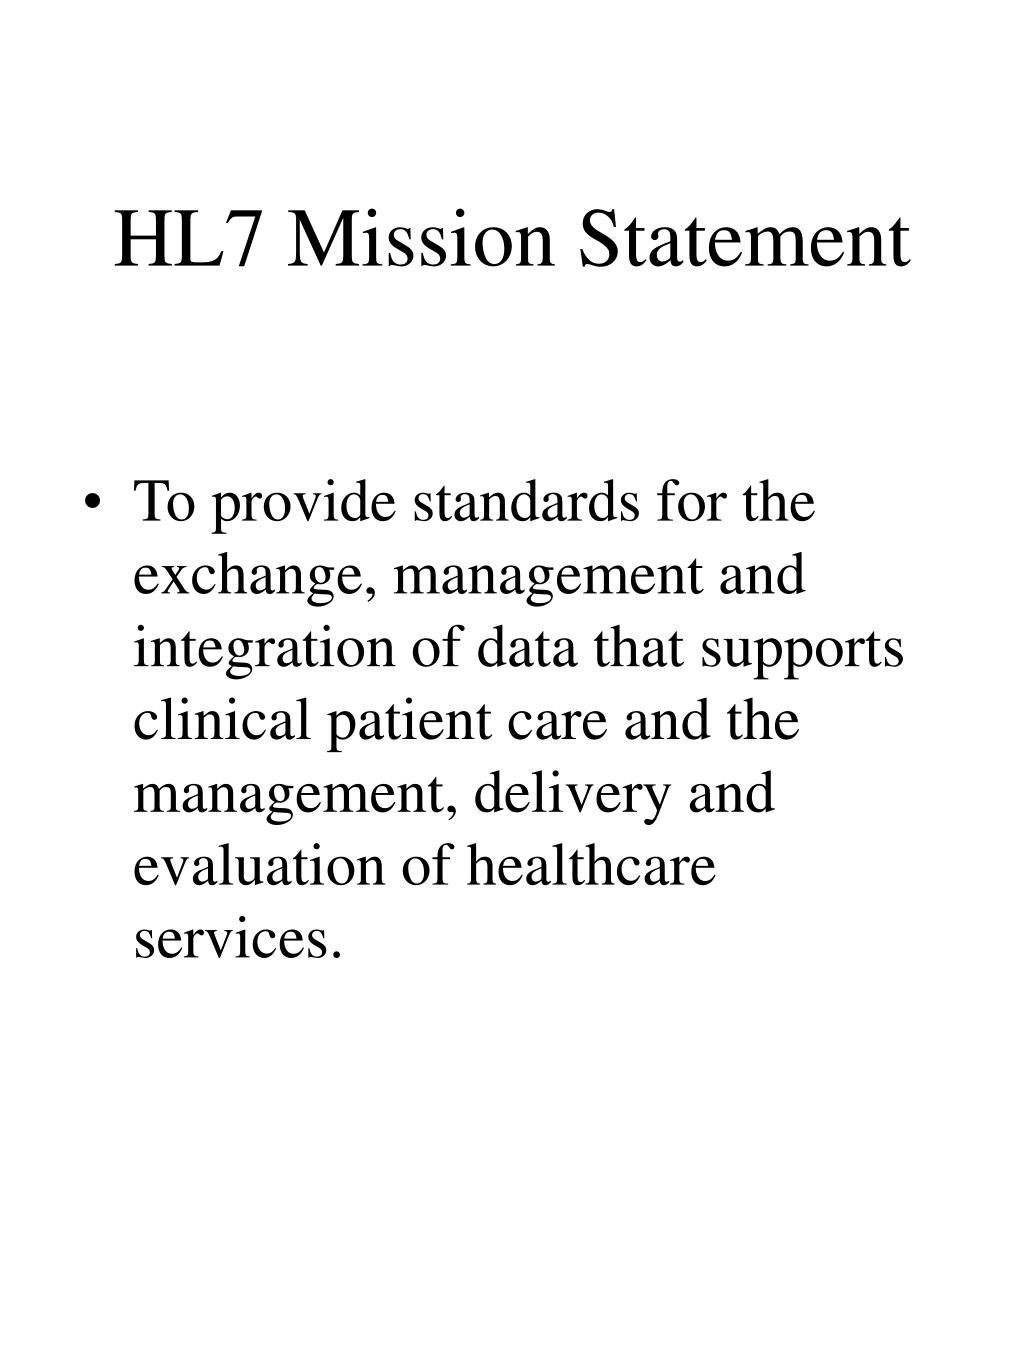 HL7 Mission Statement